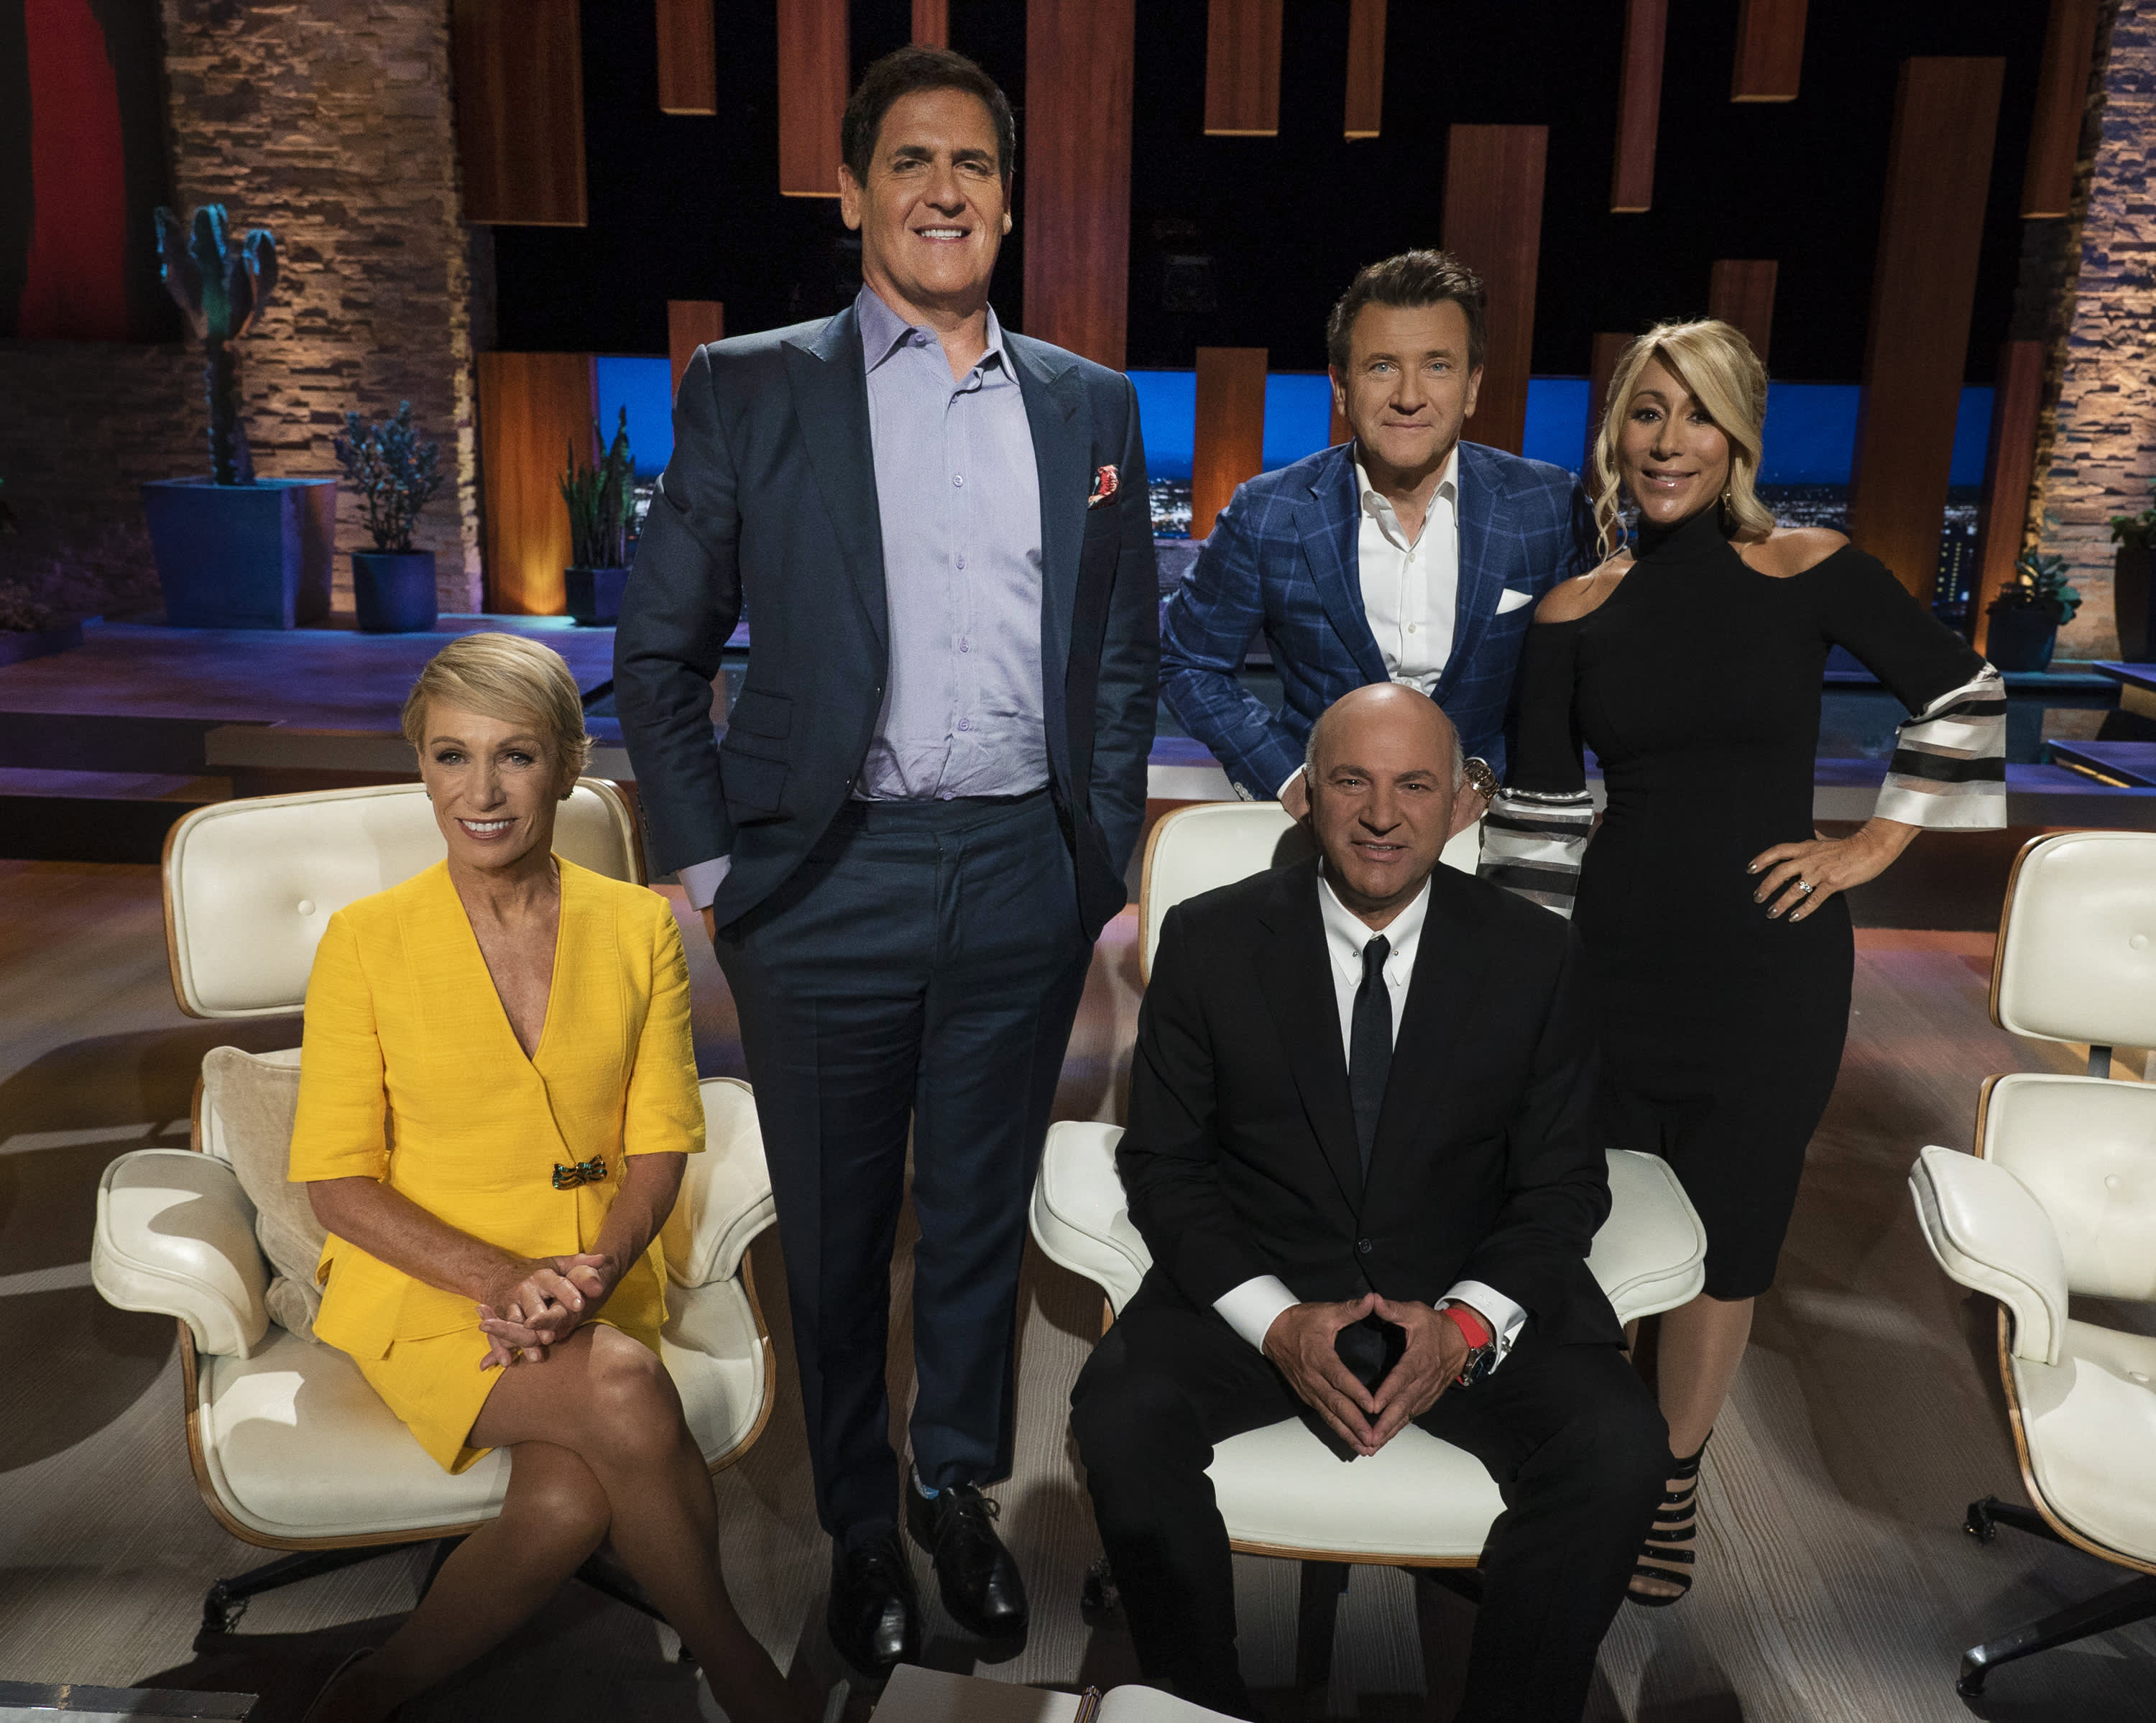 Mark Cuban: This is what it's like behind the scenes at 'Shark Tank'